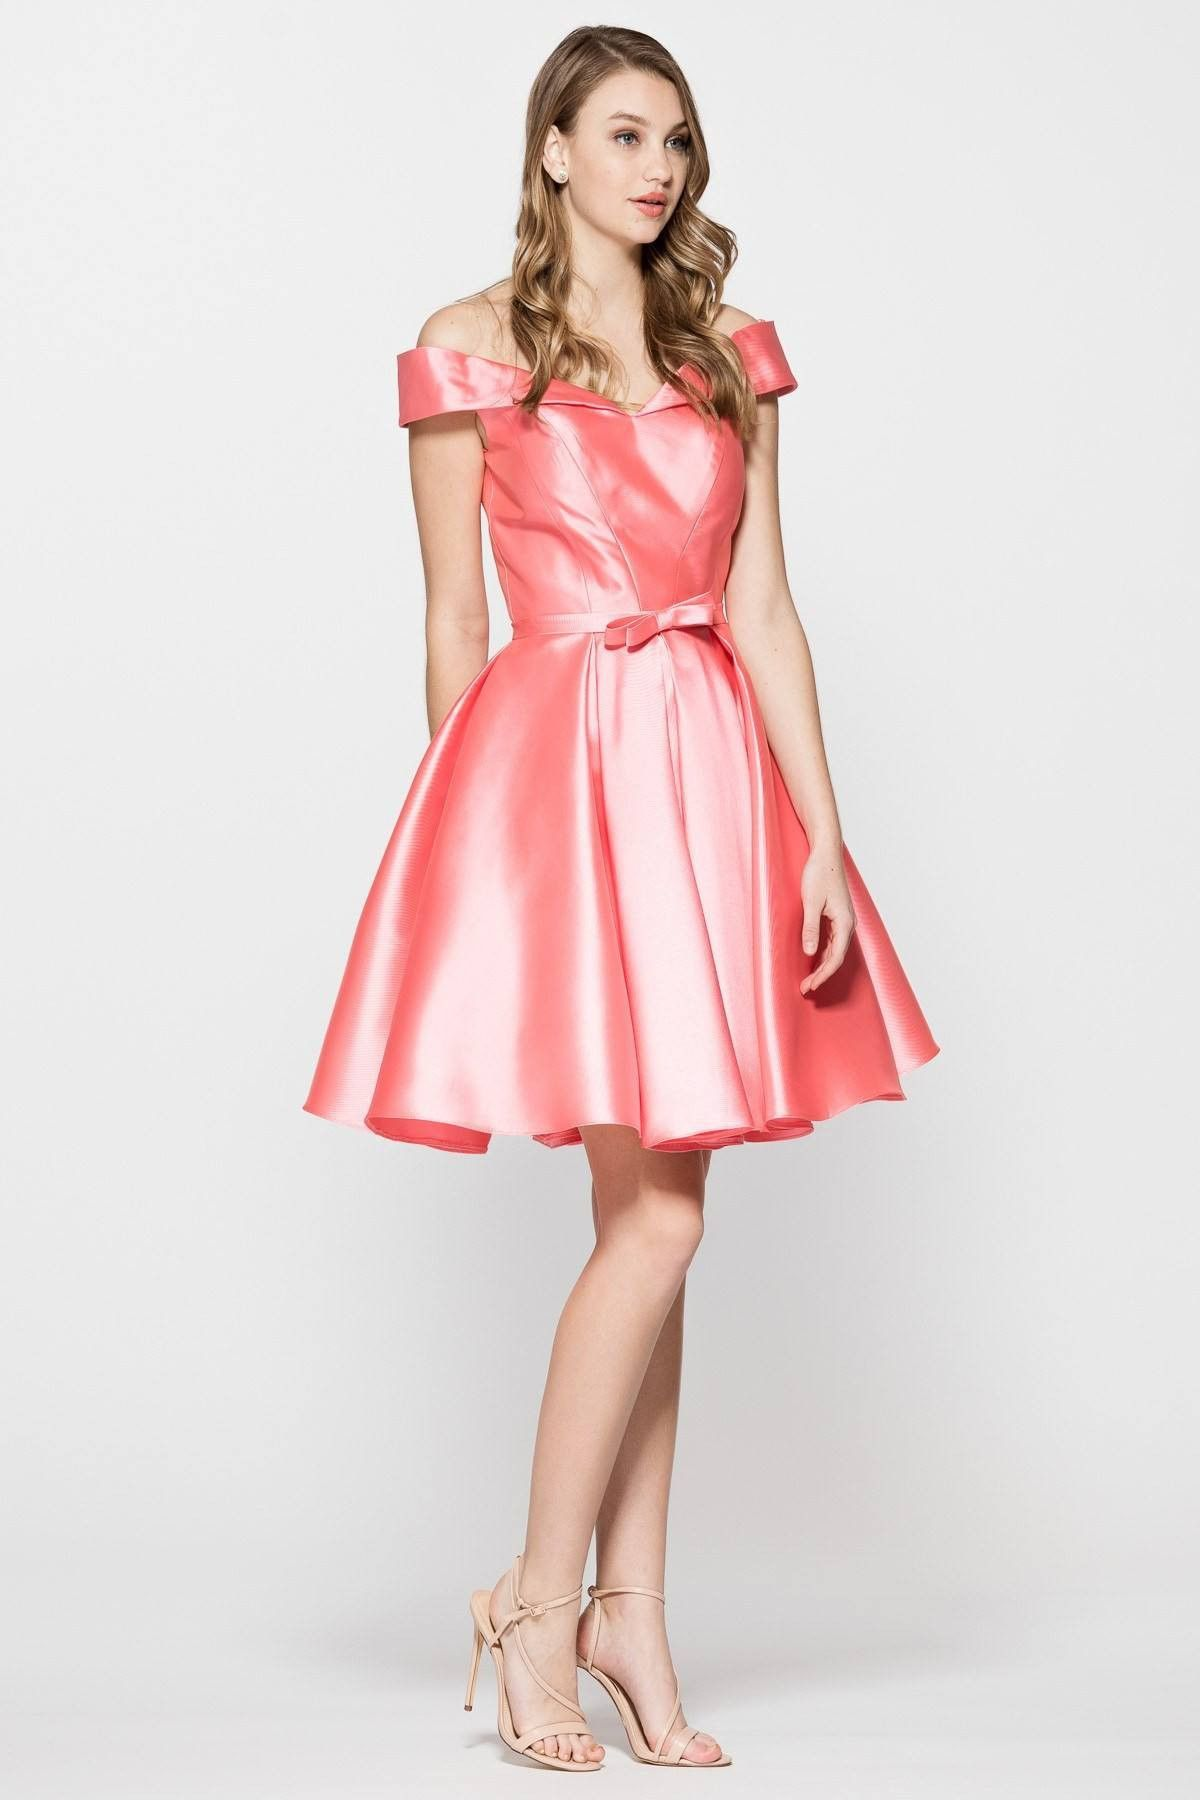 Affordable prom dress Bicici Coty Bc#MD3049S - CLOSEOUT | Affordable ...